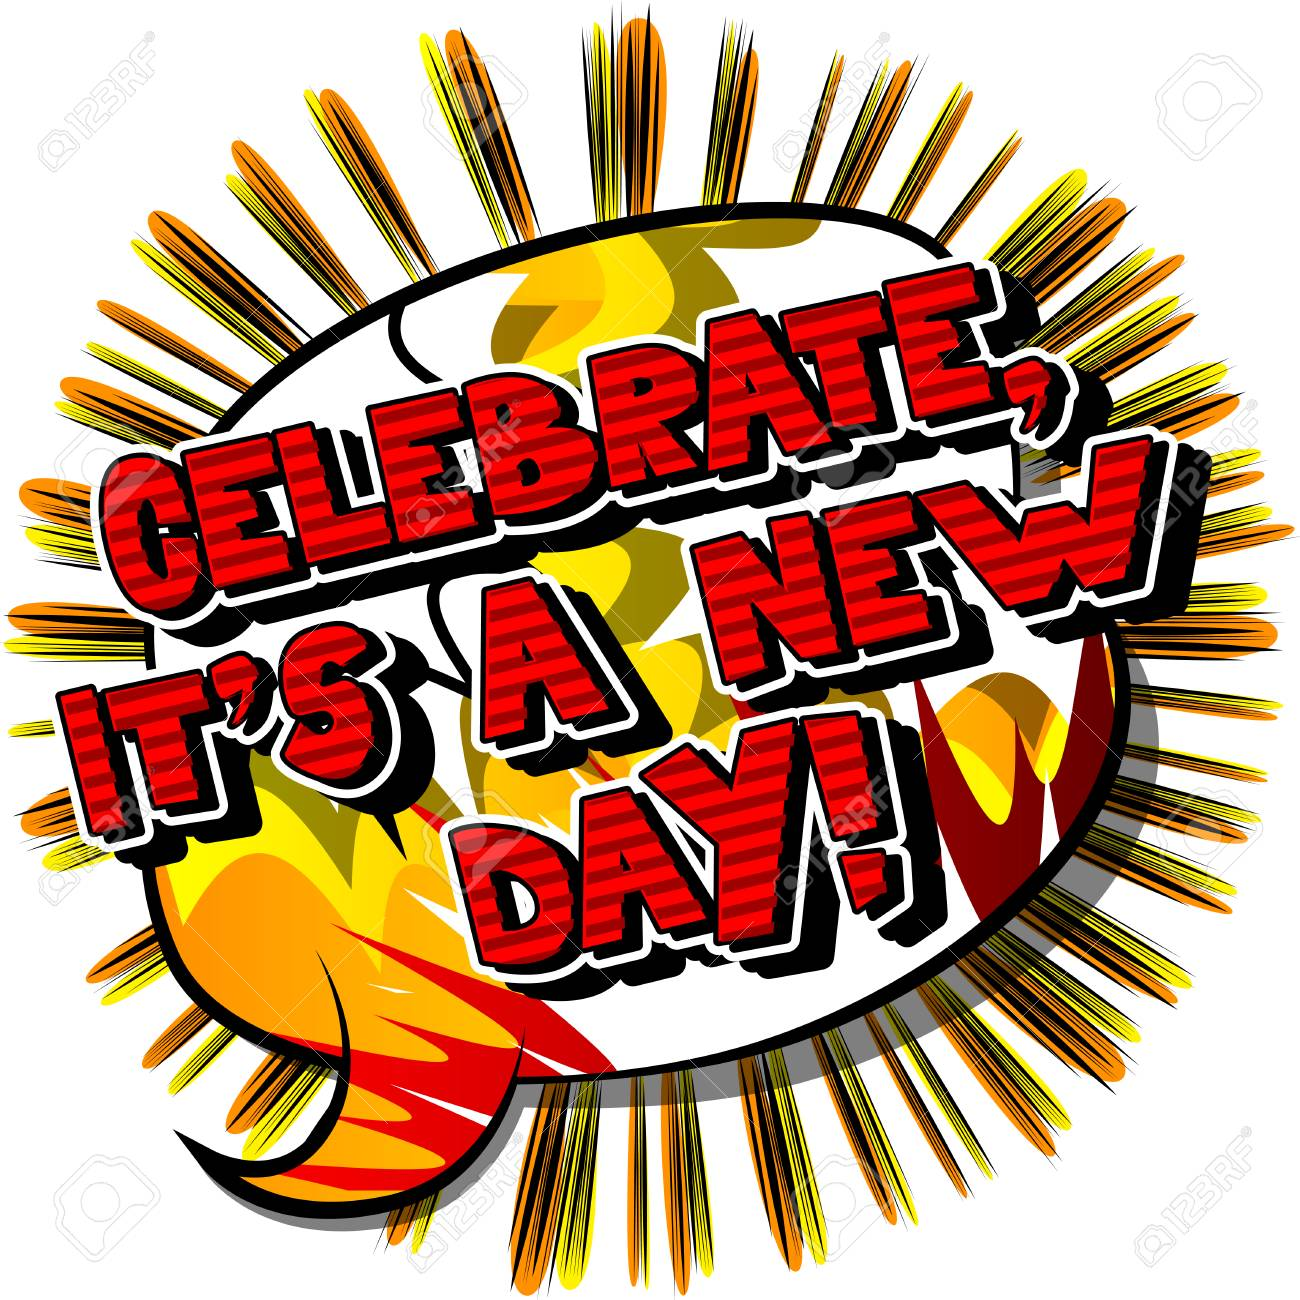 Celebrate Its A New Day Vector Illustrated Comic Book Style